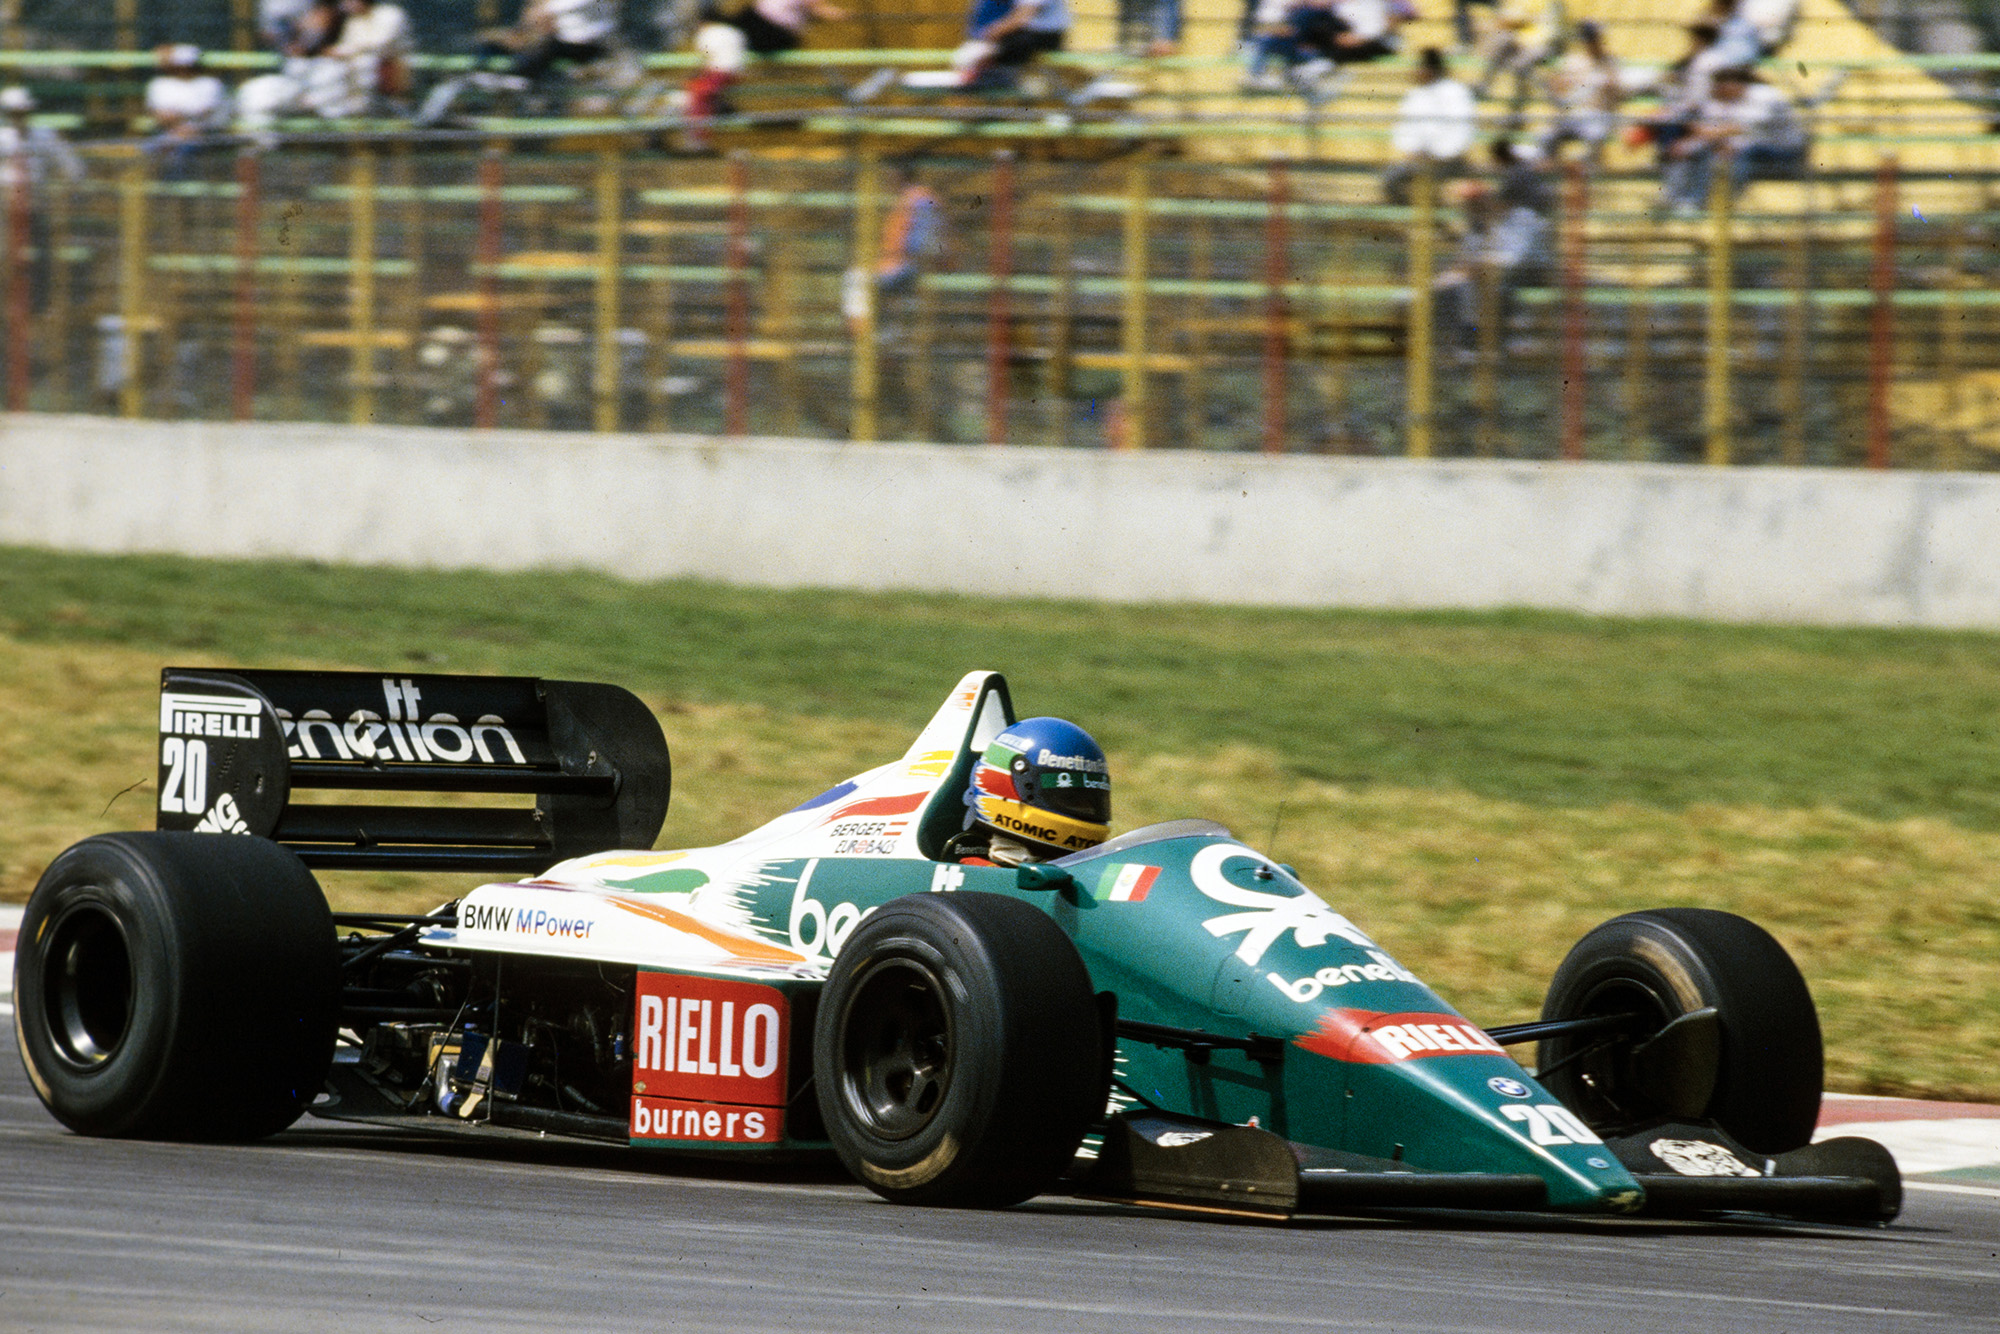 Gerhard Berger in his Benetton B186 BMW at the 1986 Mexican Grand Prix